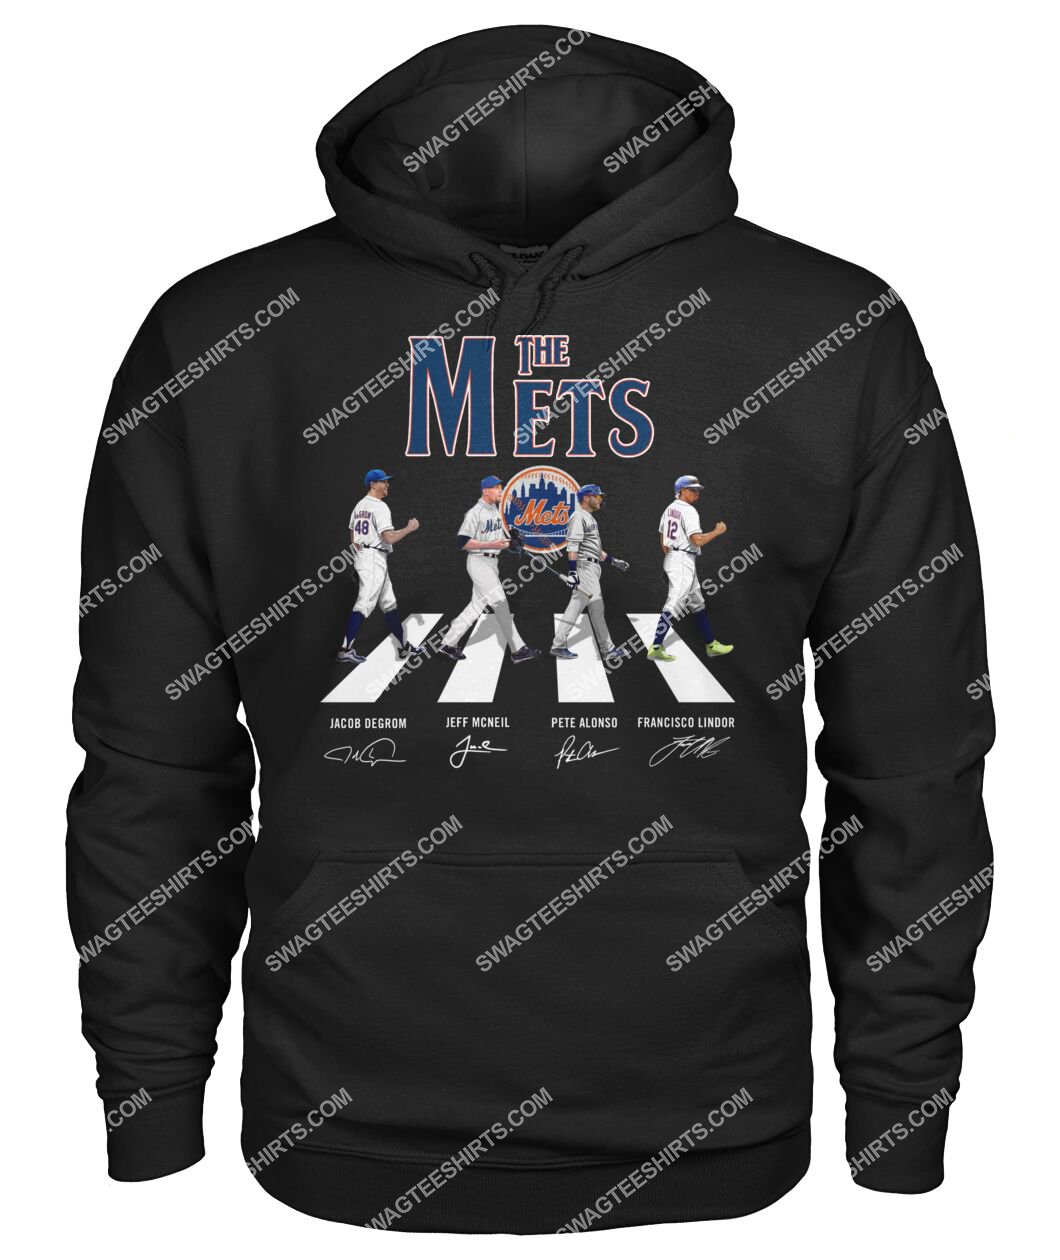 abbey road the new york mets signatures hoodie 1